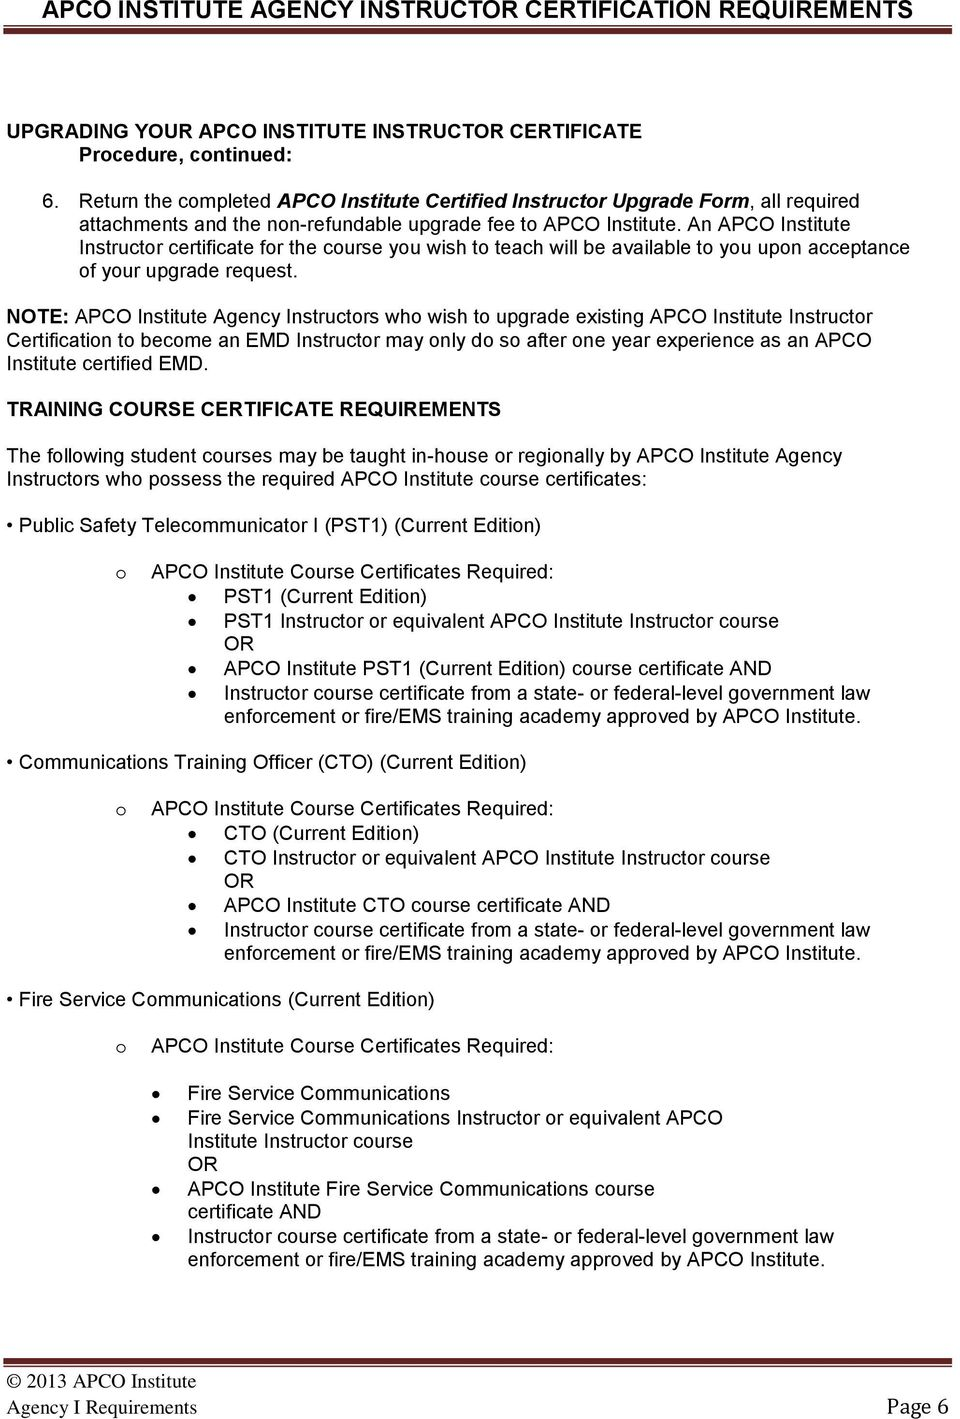 Apco Institute Agency Instructor Certification Requirements Pdf